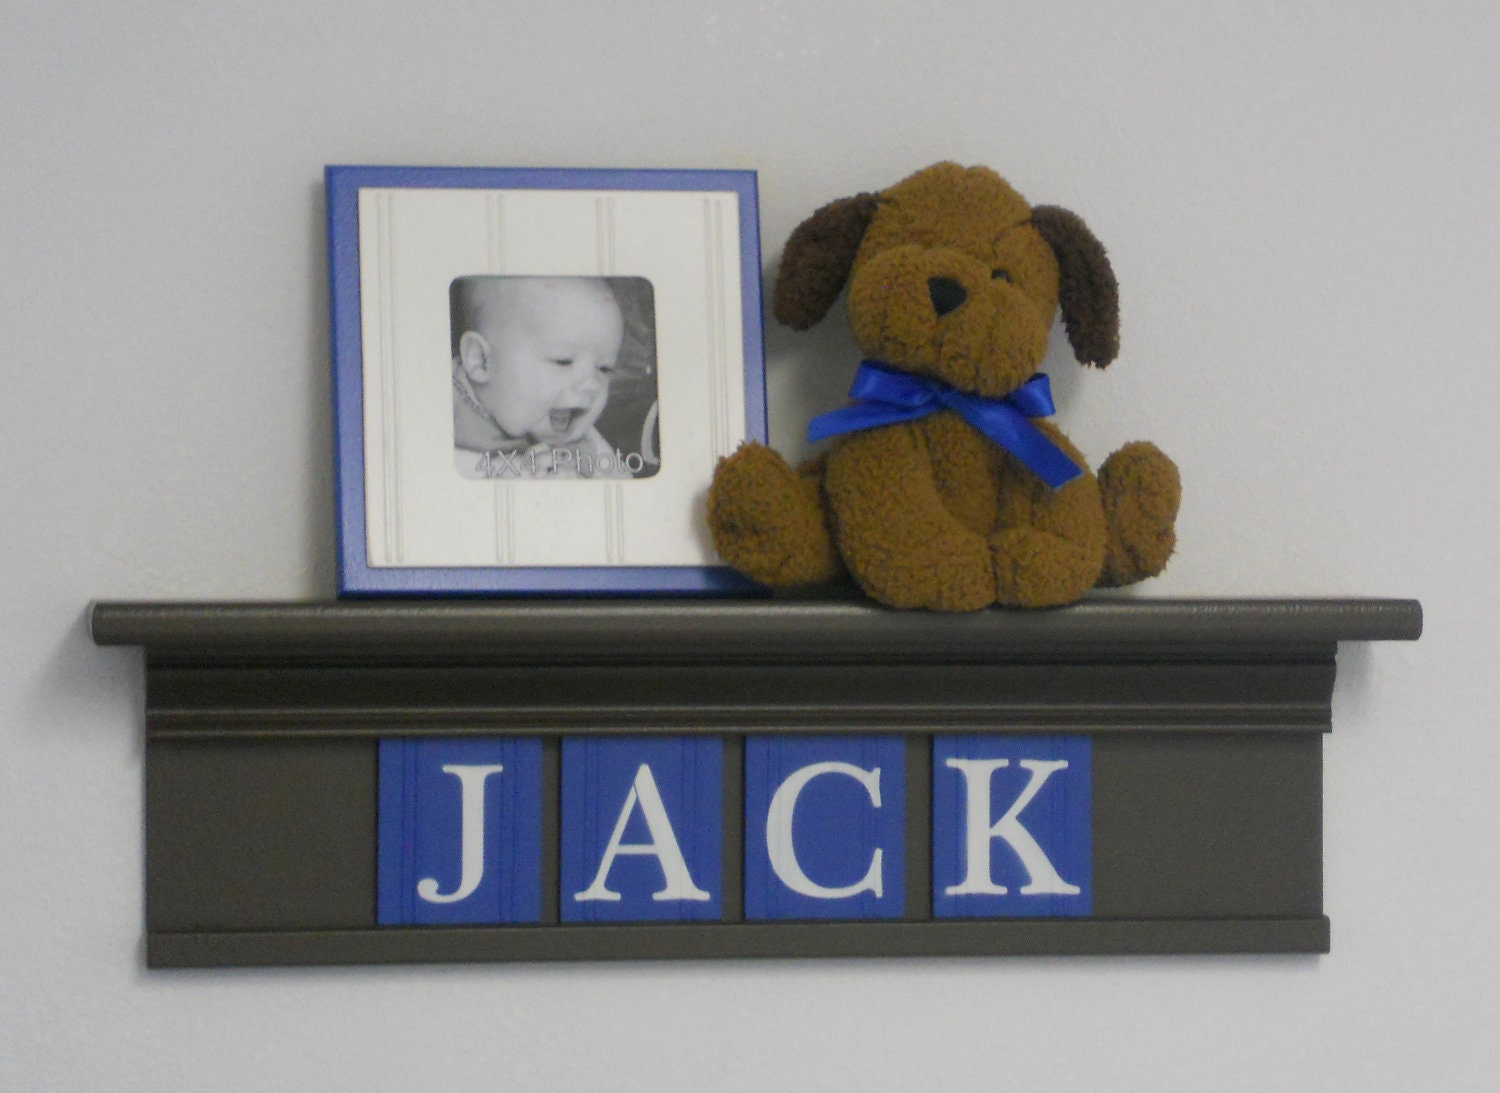 Baby boy nursery decor wall shelves name for jack by for Baby name nursery decoration